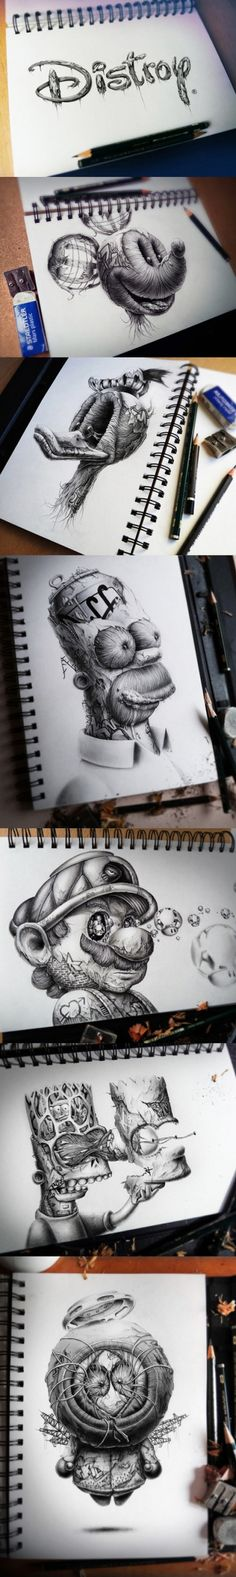 That Is Such A Cool Drawing Art Pinterest Notebooks